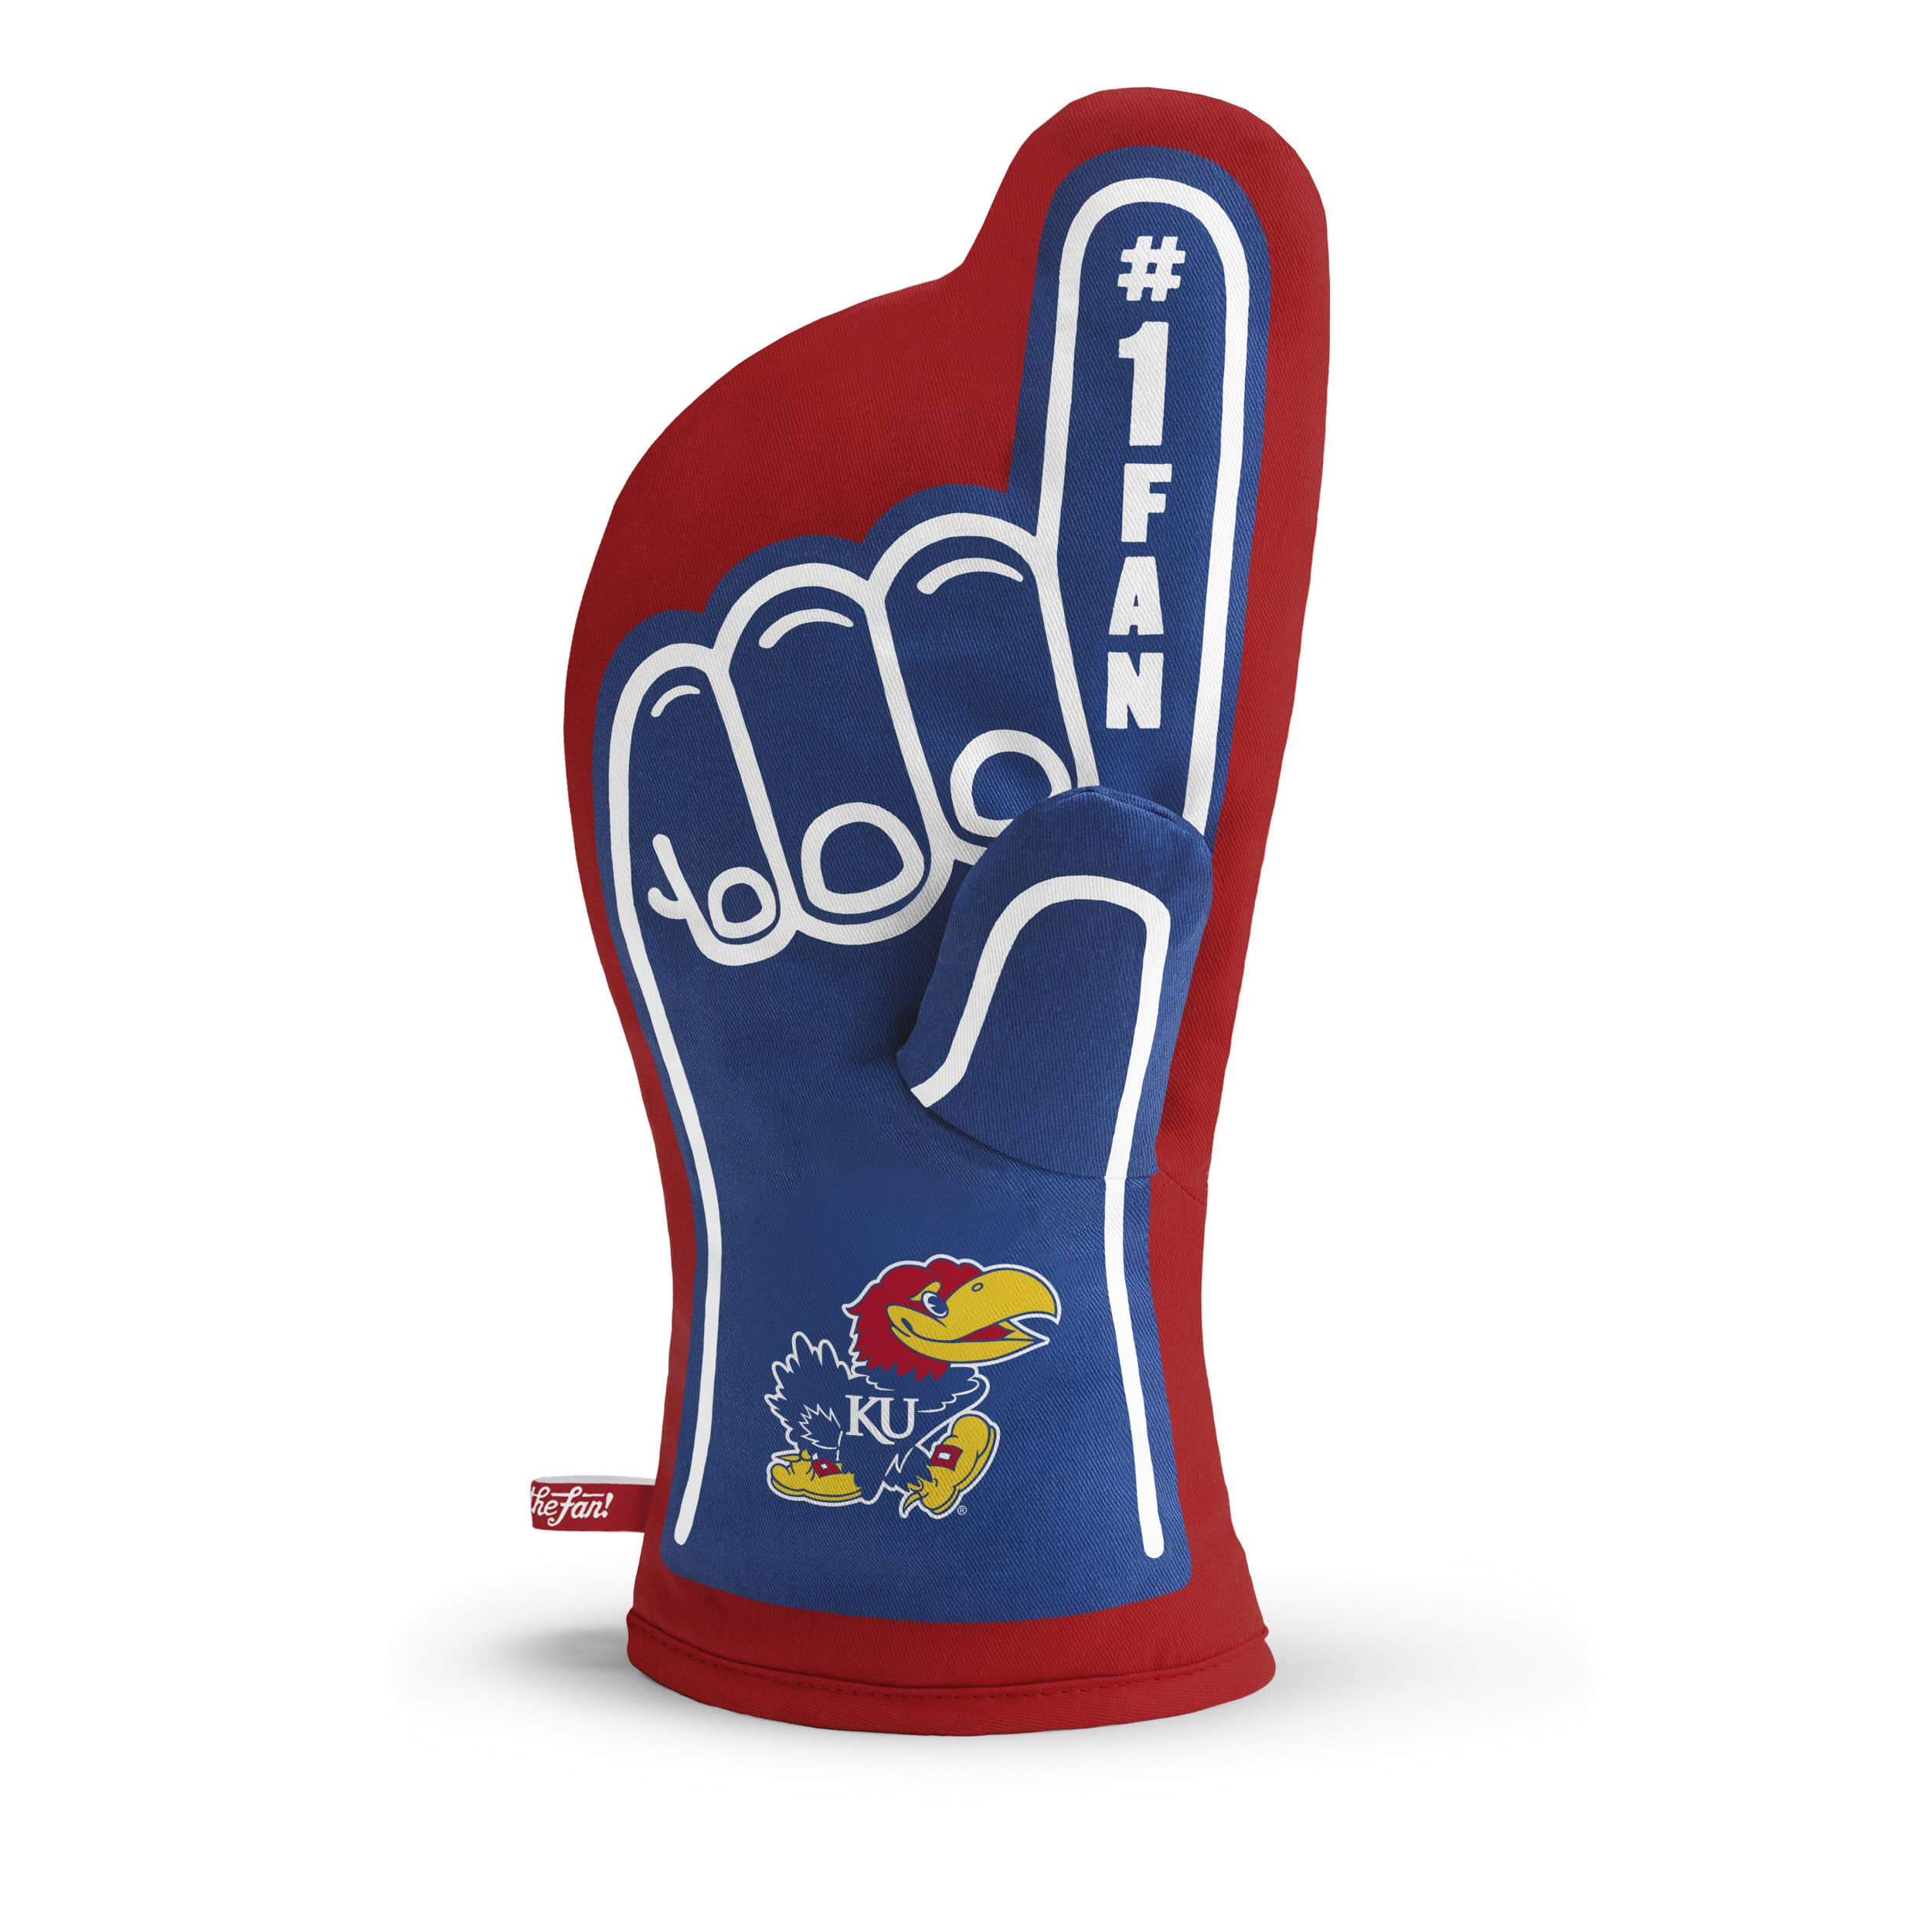 NCAA College Team Logo #1 Fan Finger Oven Mitts